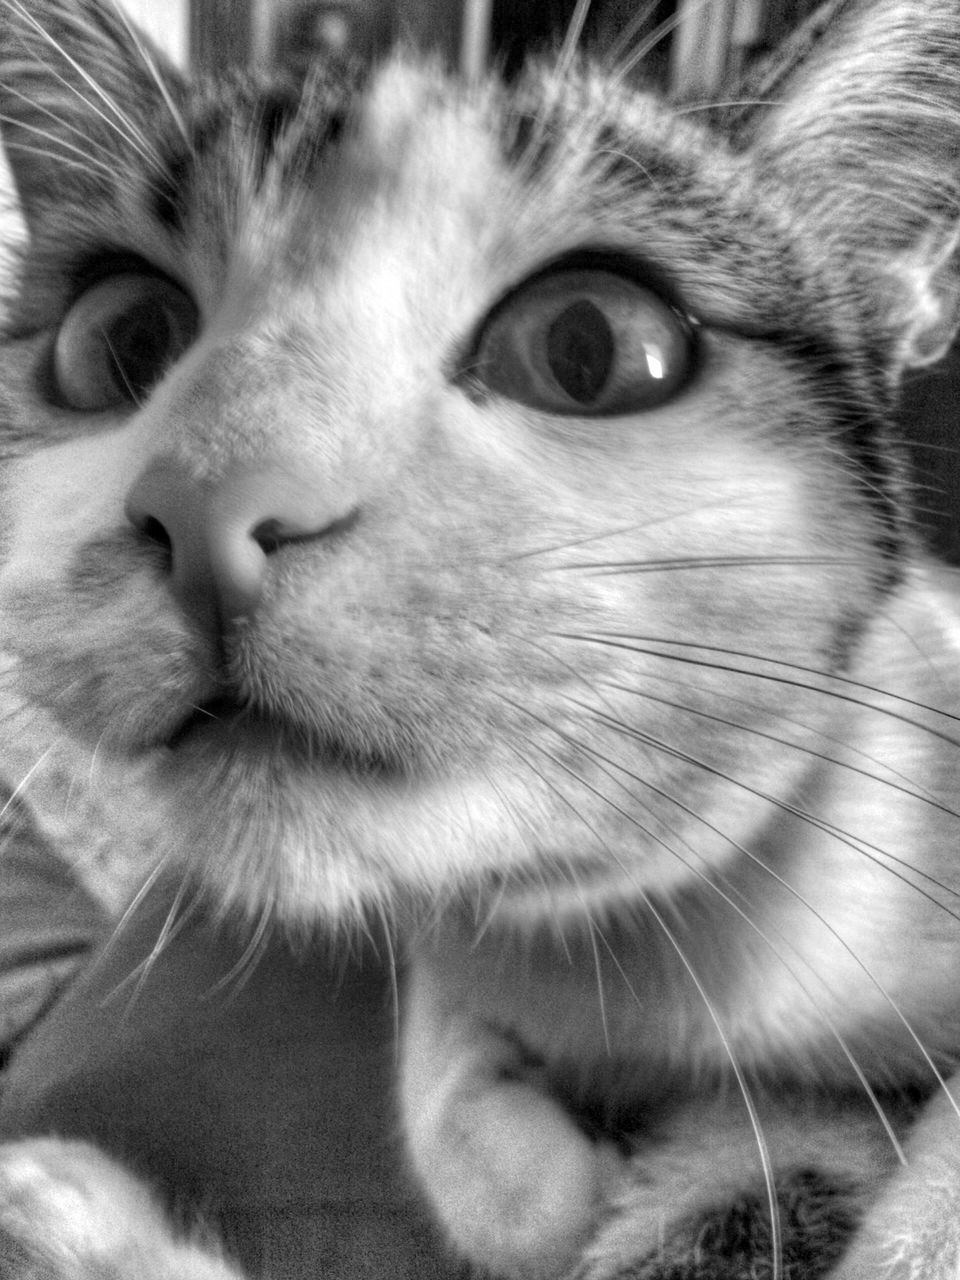 pets, domestic animals, animal themes, one animal, mammal, domestic cat, whisker, close-up, no people, feline, portrait, indoors, day